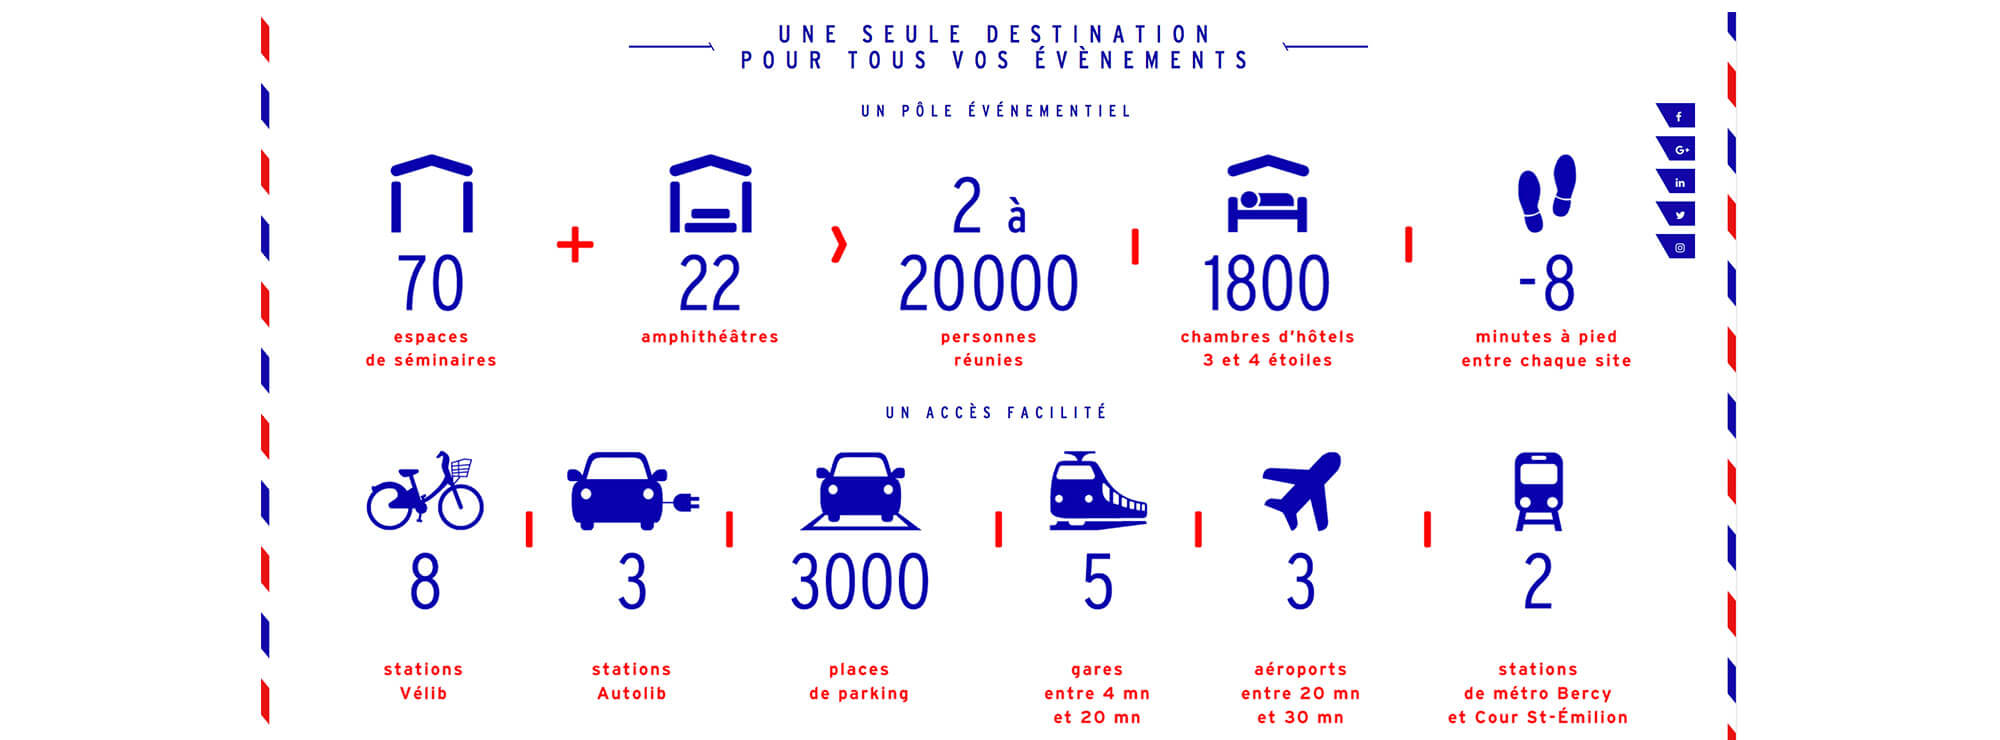 10.destination paris bercy pictogrammes evenementiel acces lieu vie.jpg